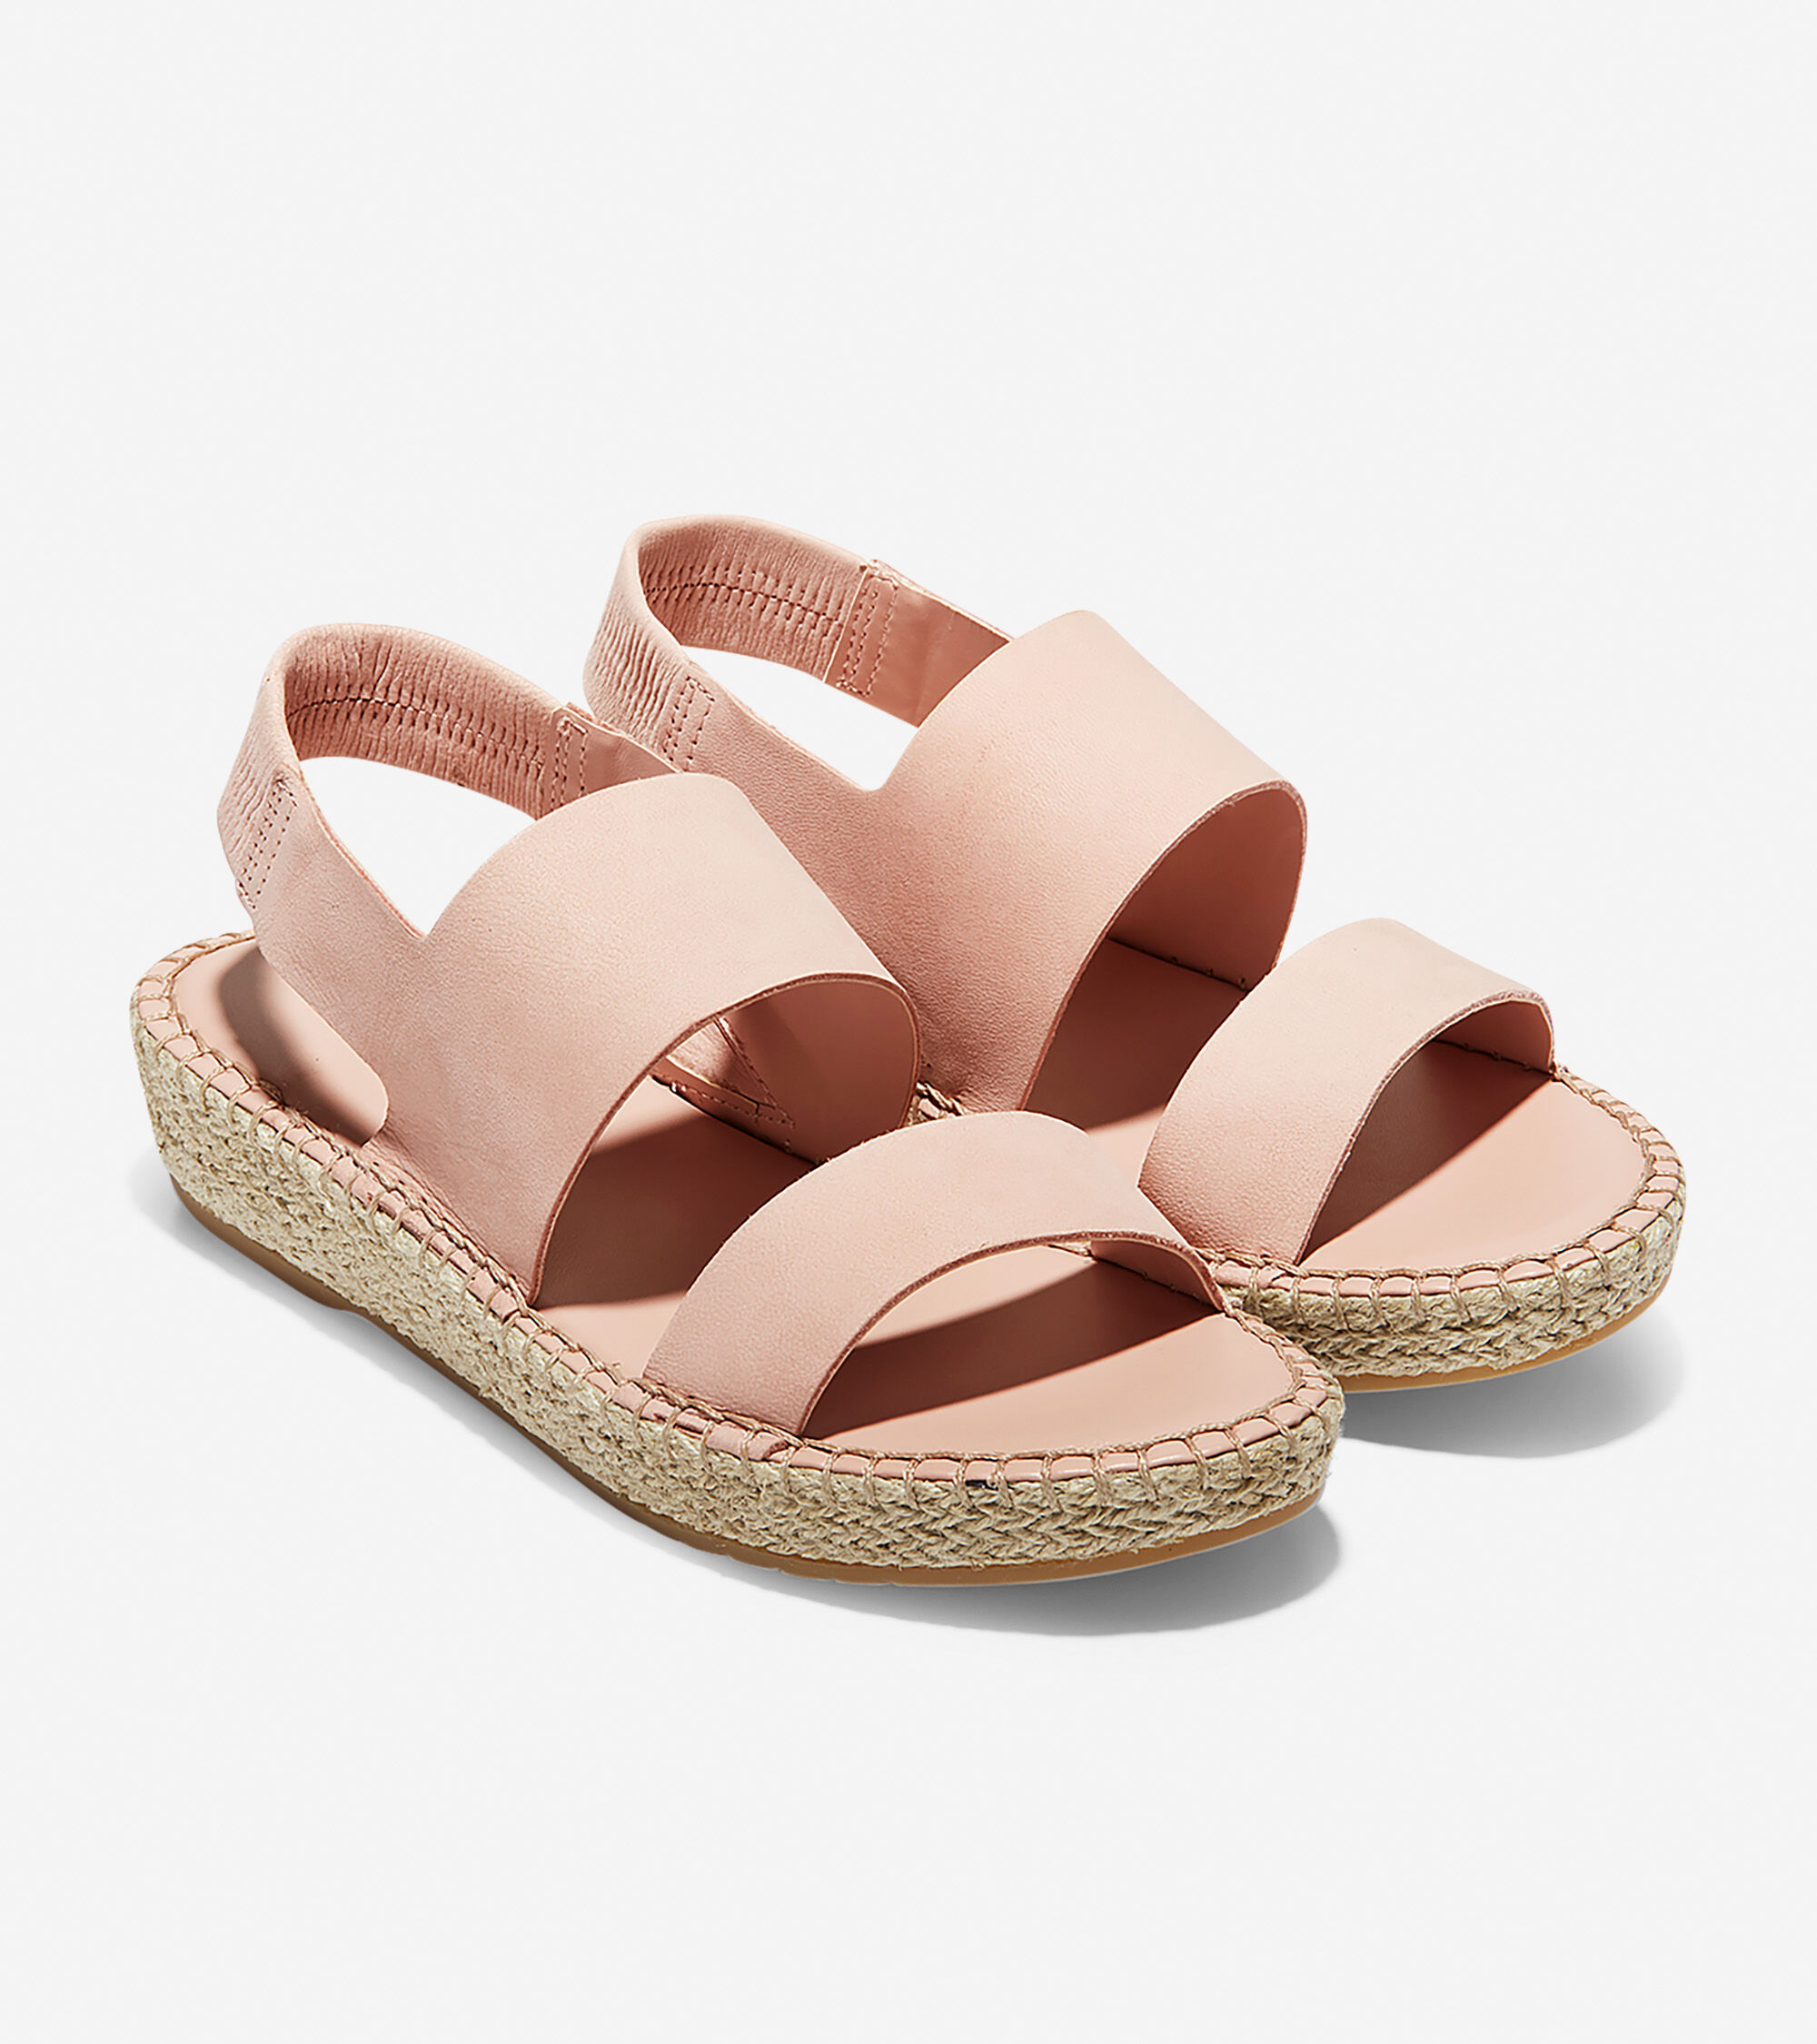 724ea8f508e0 Women s Cloudfeel Espadrille Wedges Sandals in Mahogany Rose